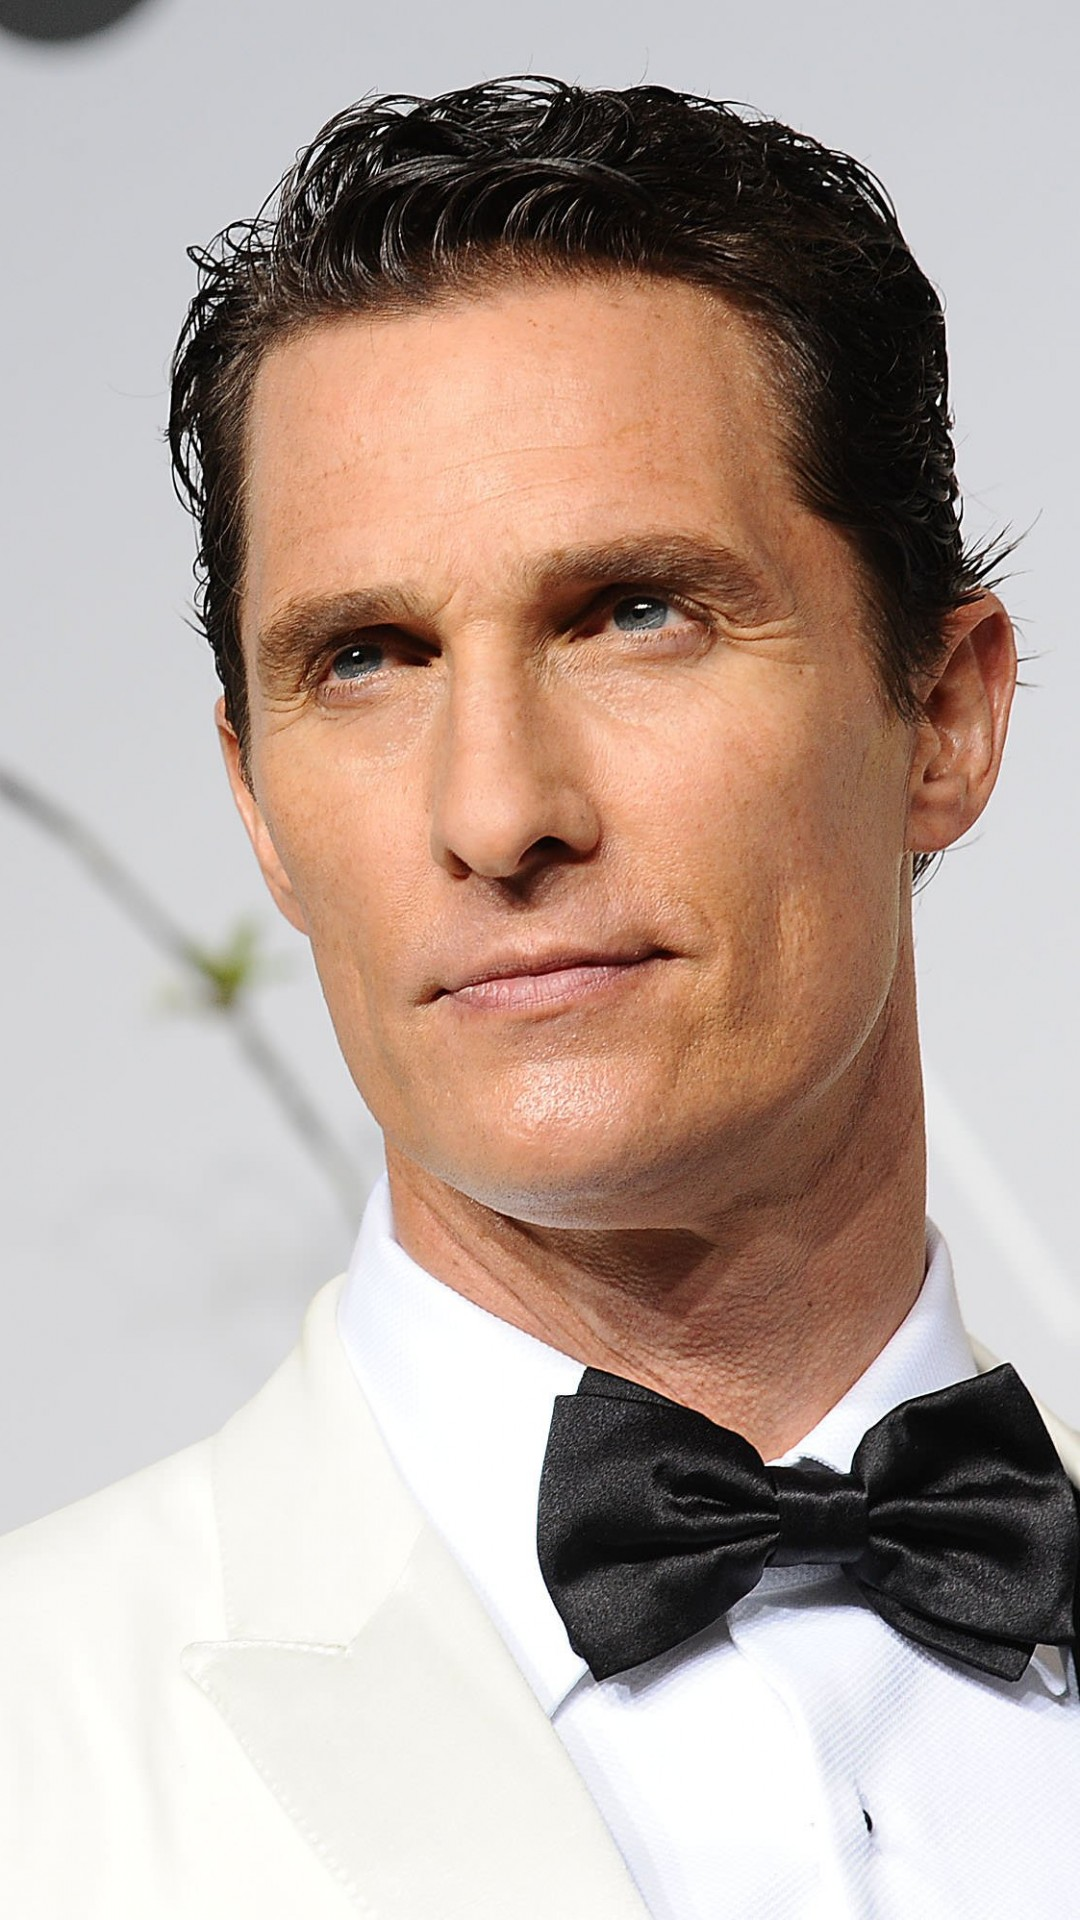 Matthew Mcconaughey in White Tuxedo Wallpaper for SAMSUNG Galaxy Note 3